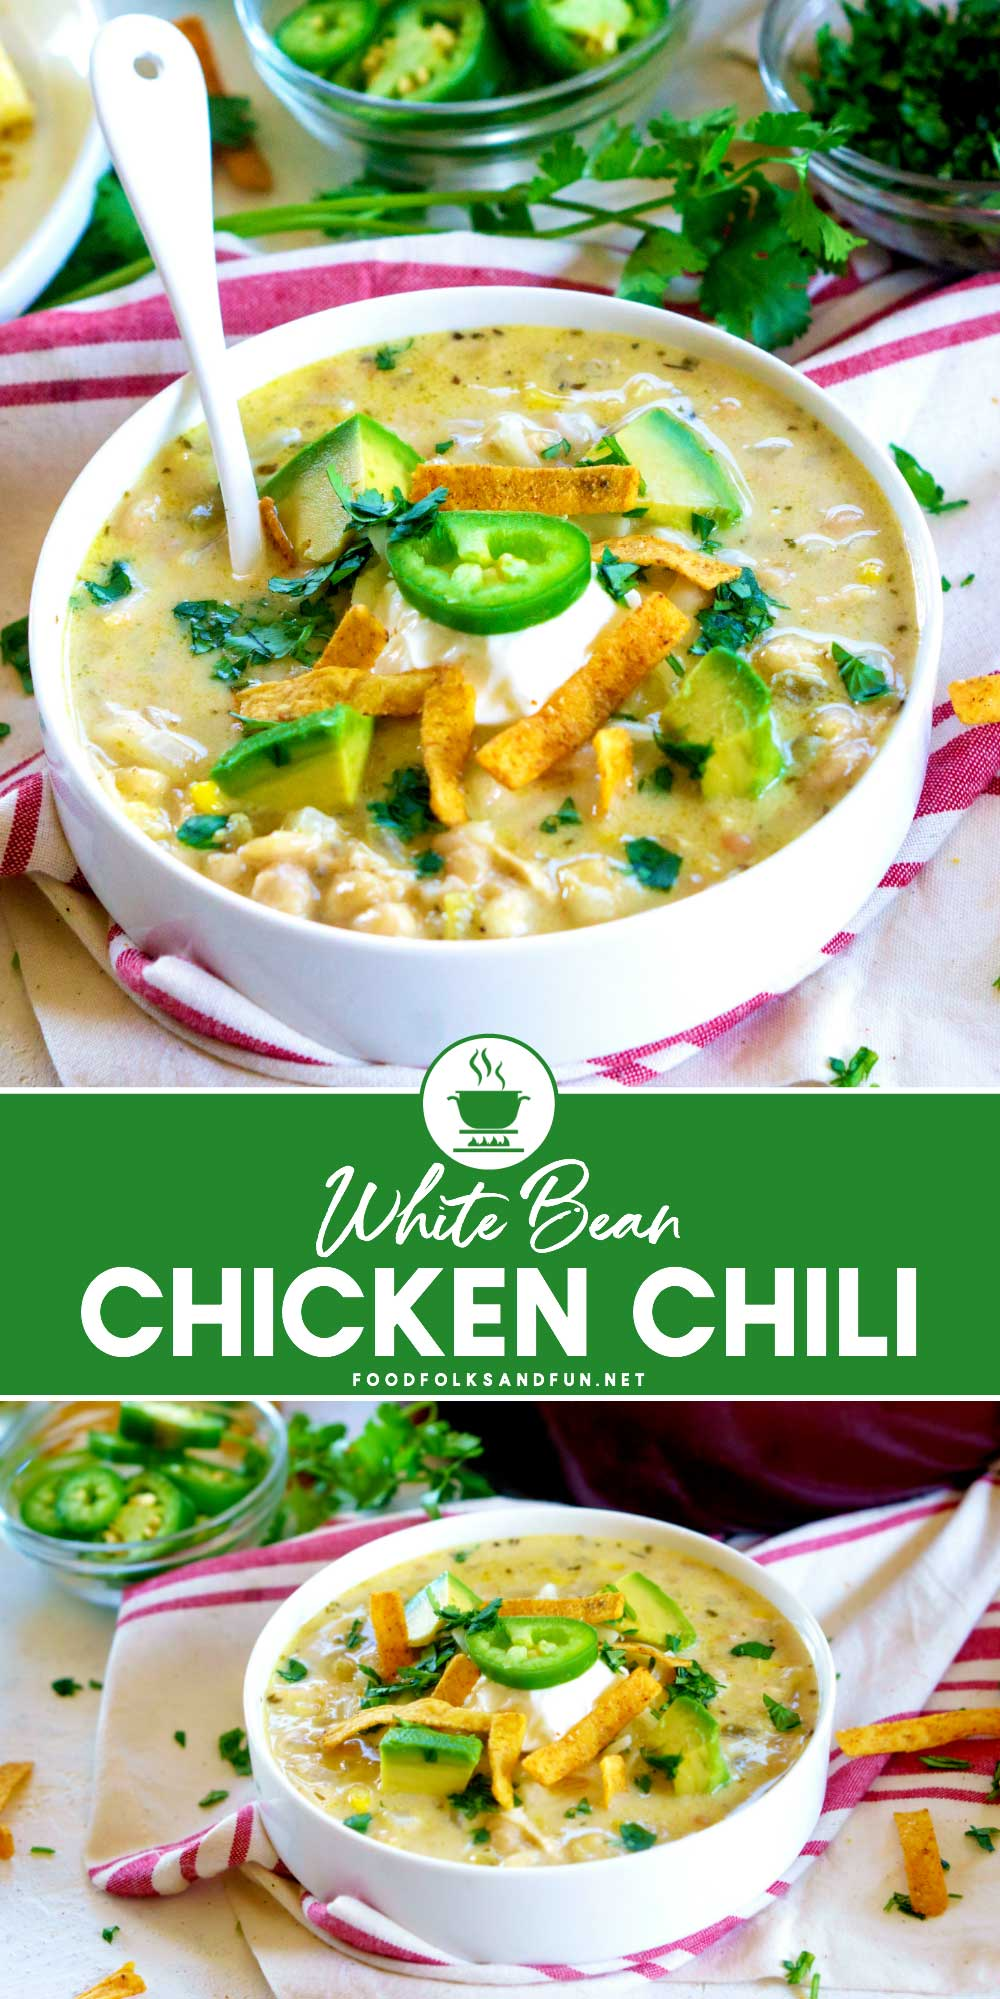 White Bean Chicken Chili with text overlay for Social Media